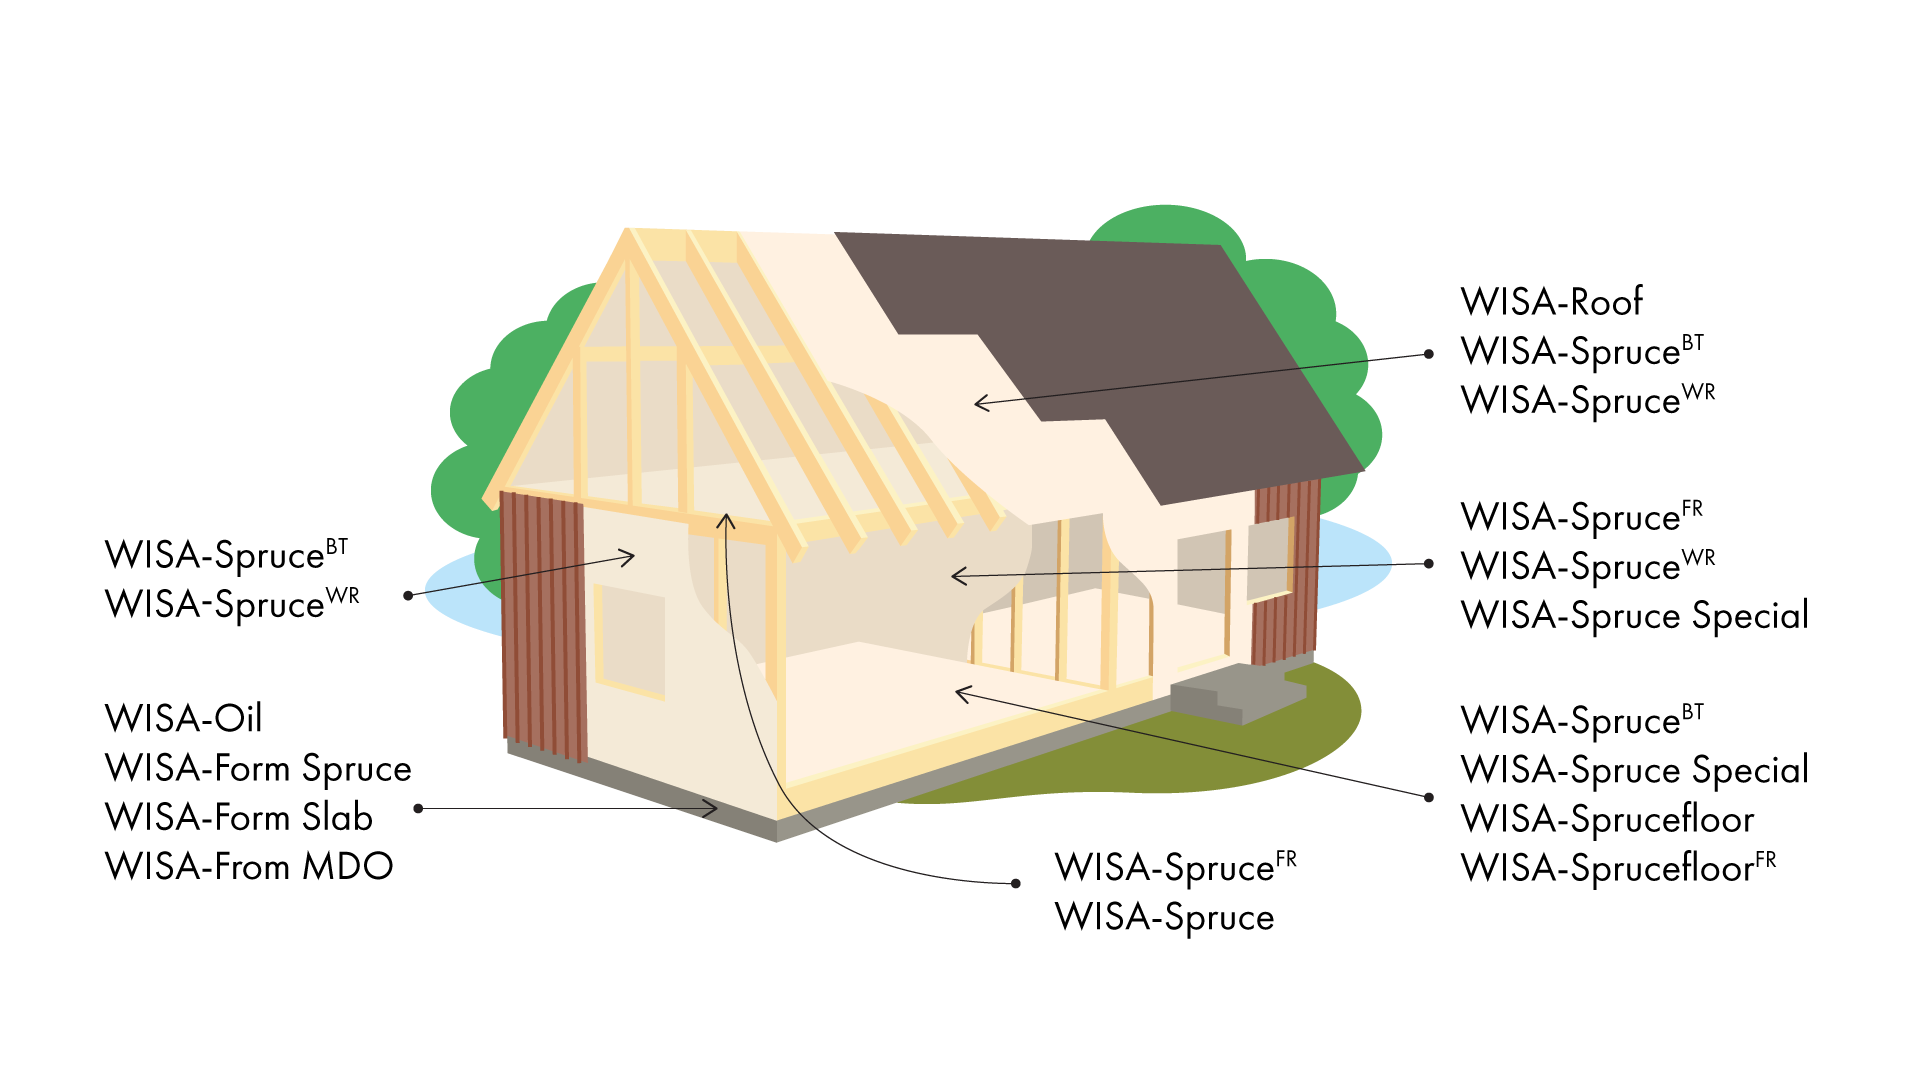 Plywood_end-use_house_structure_final.png